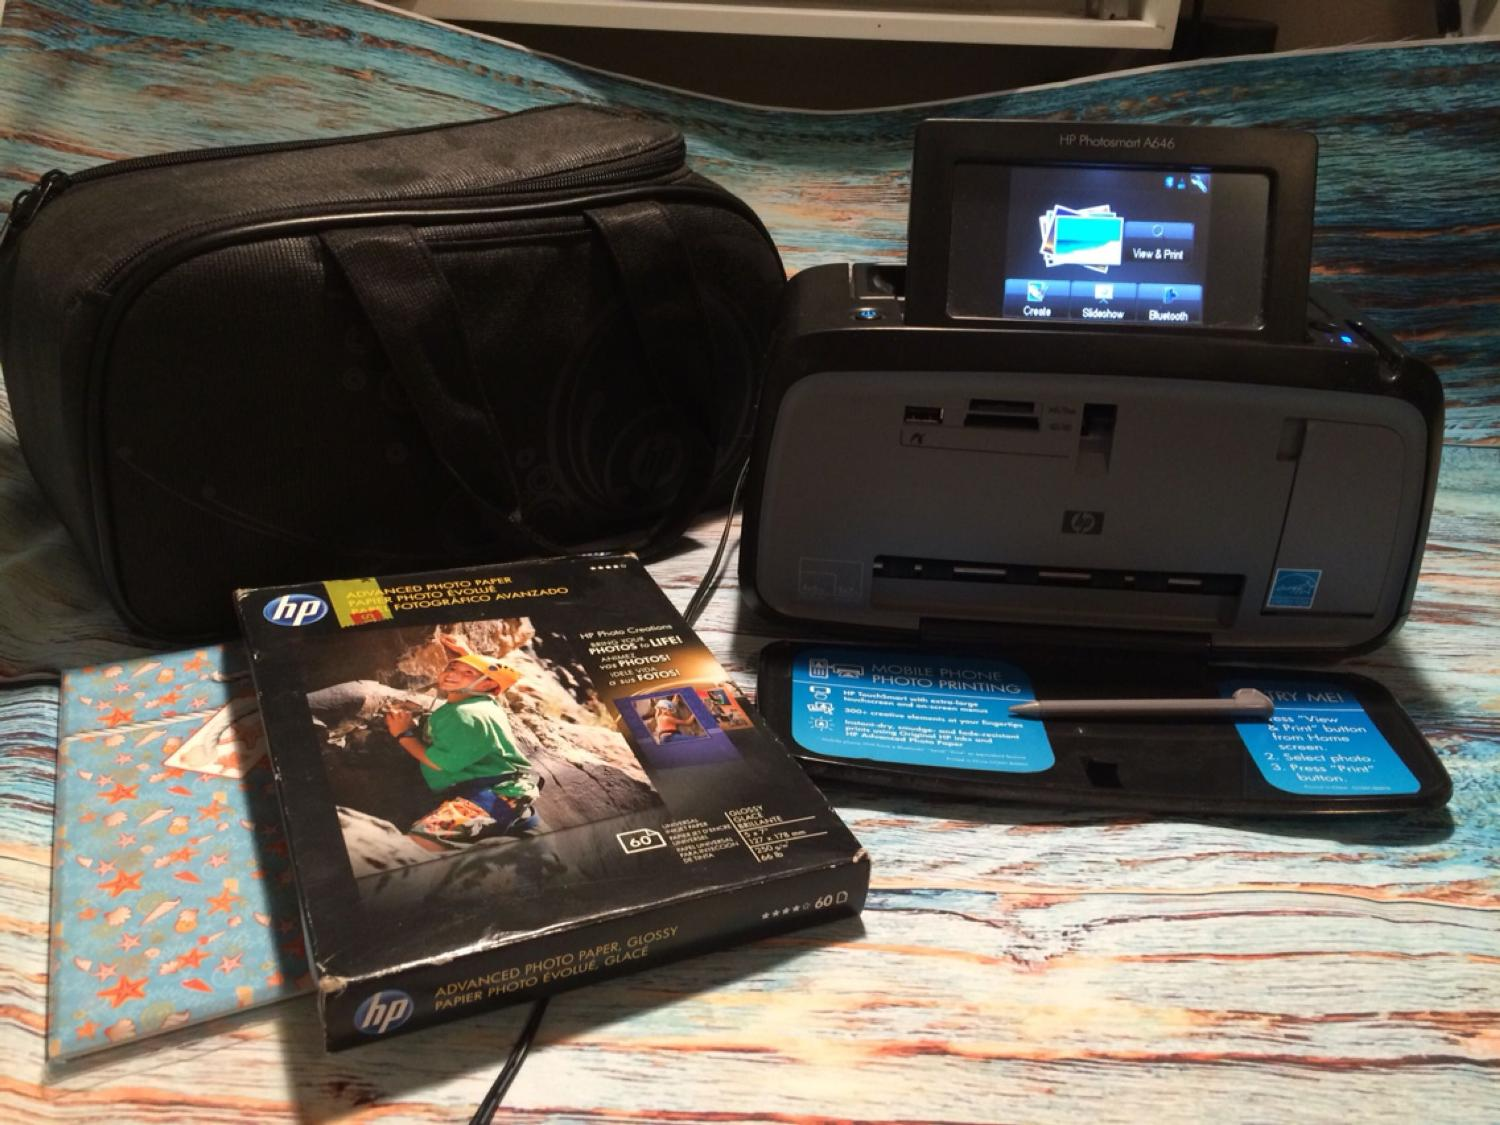 HP PhotoSmart A646 Photo Printer with Lot of Photo Paper